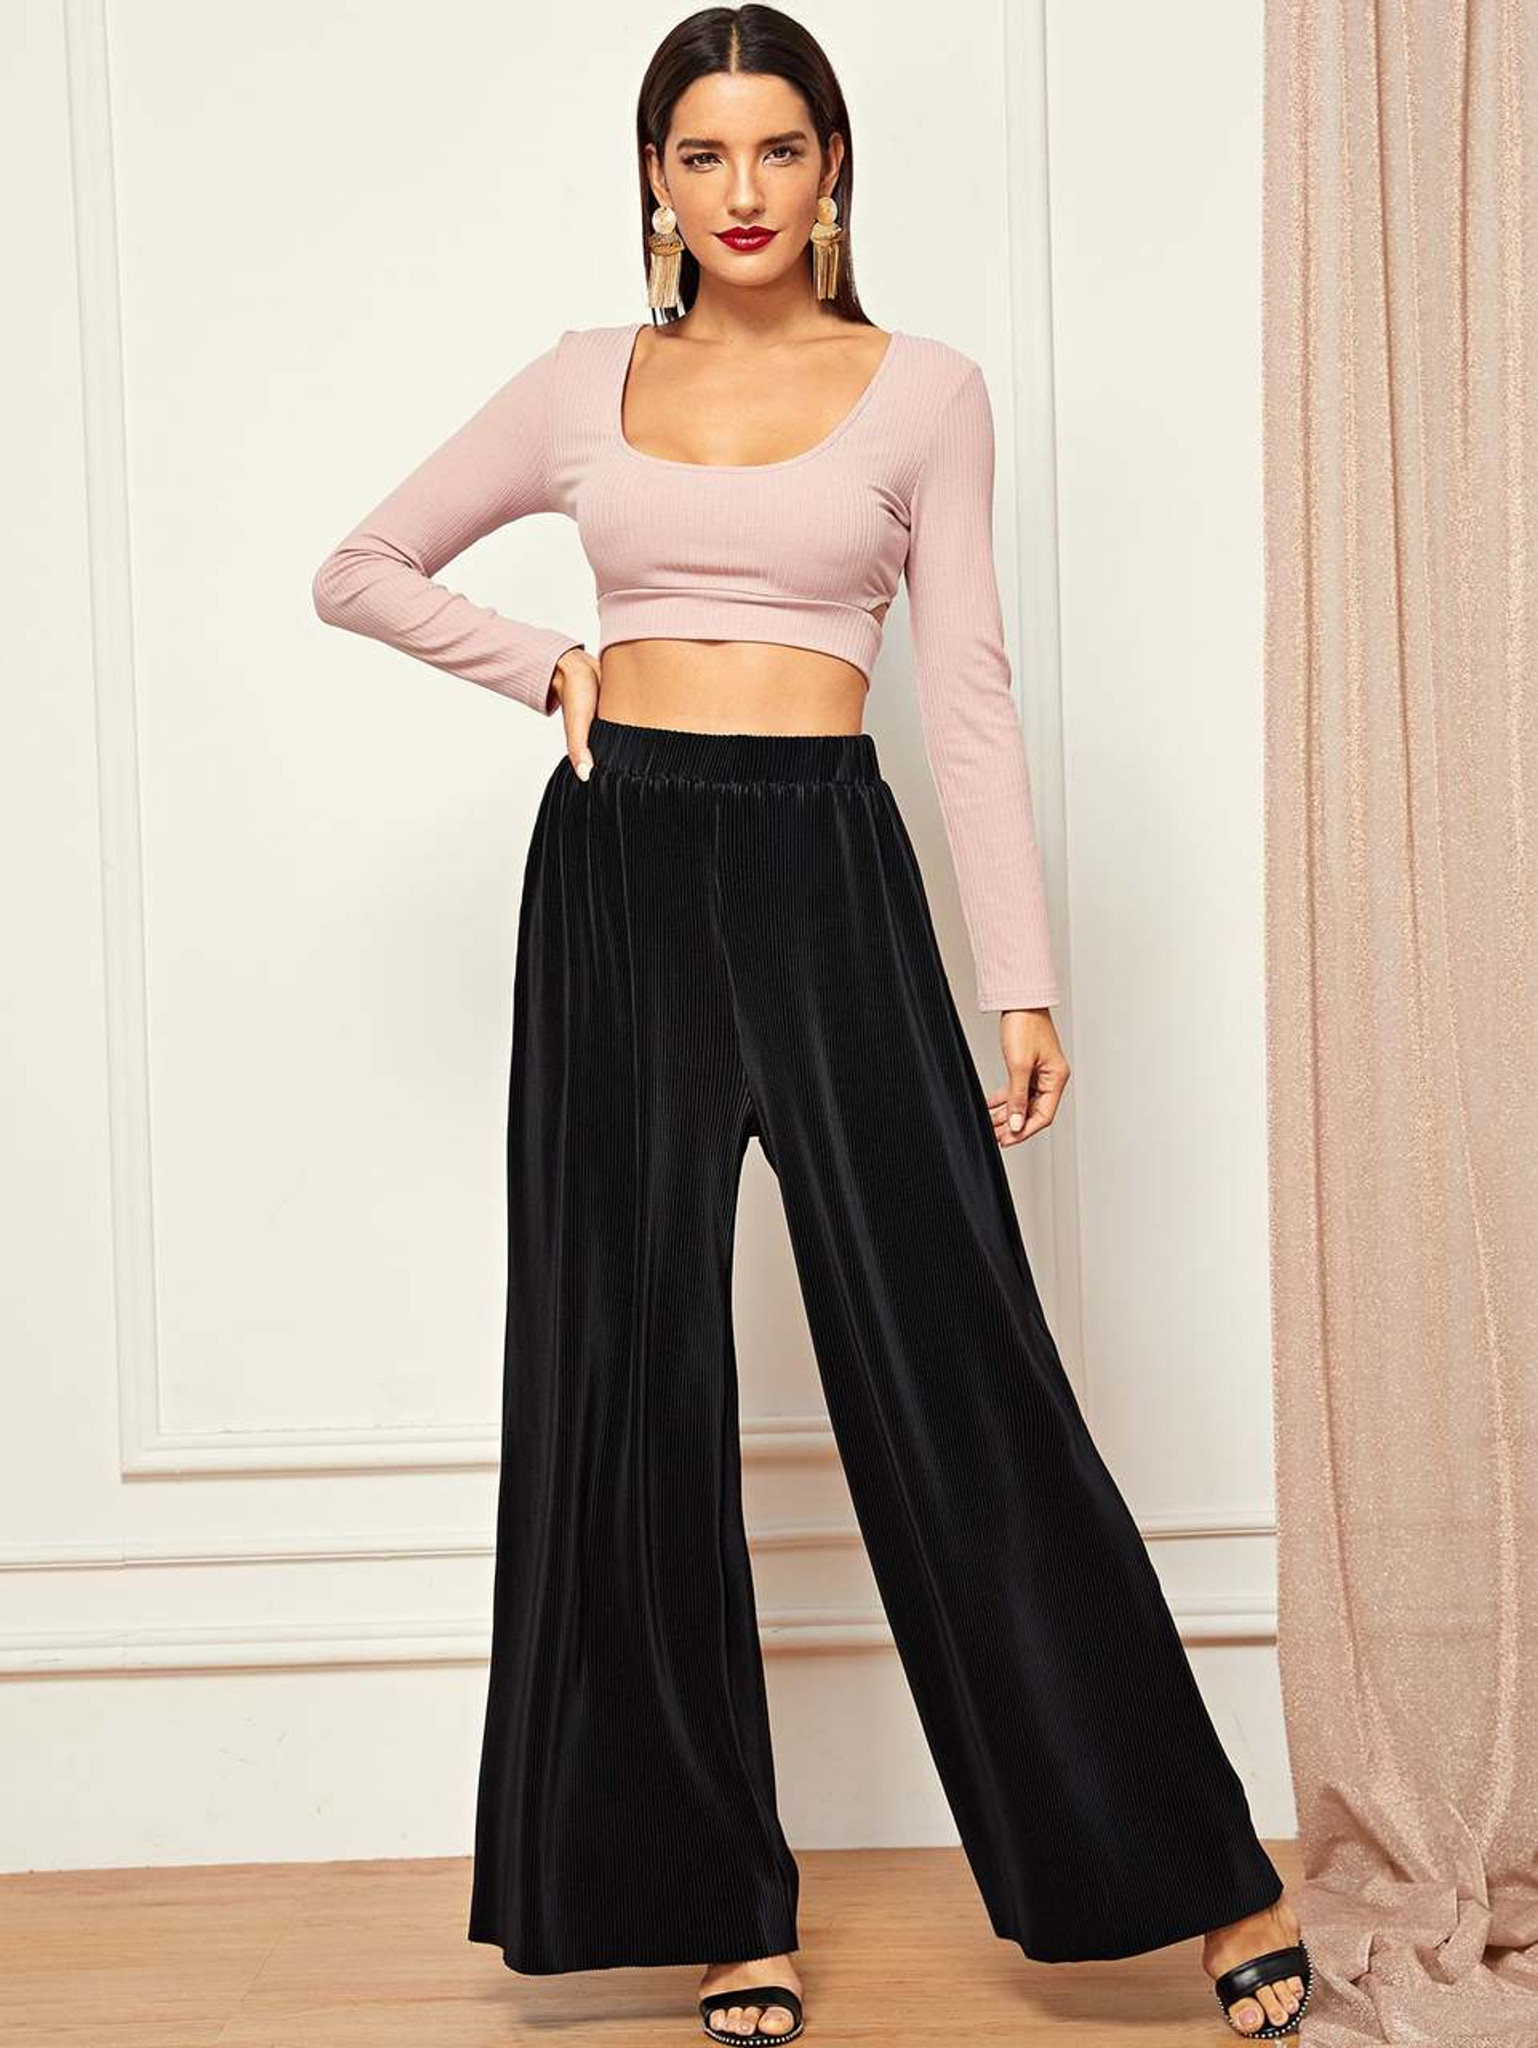 Fifth Avenue Women's TRIGZ Velvet Wide Leg Pants - Black